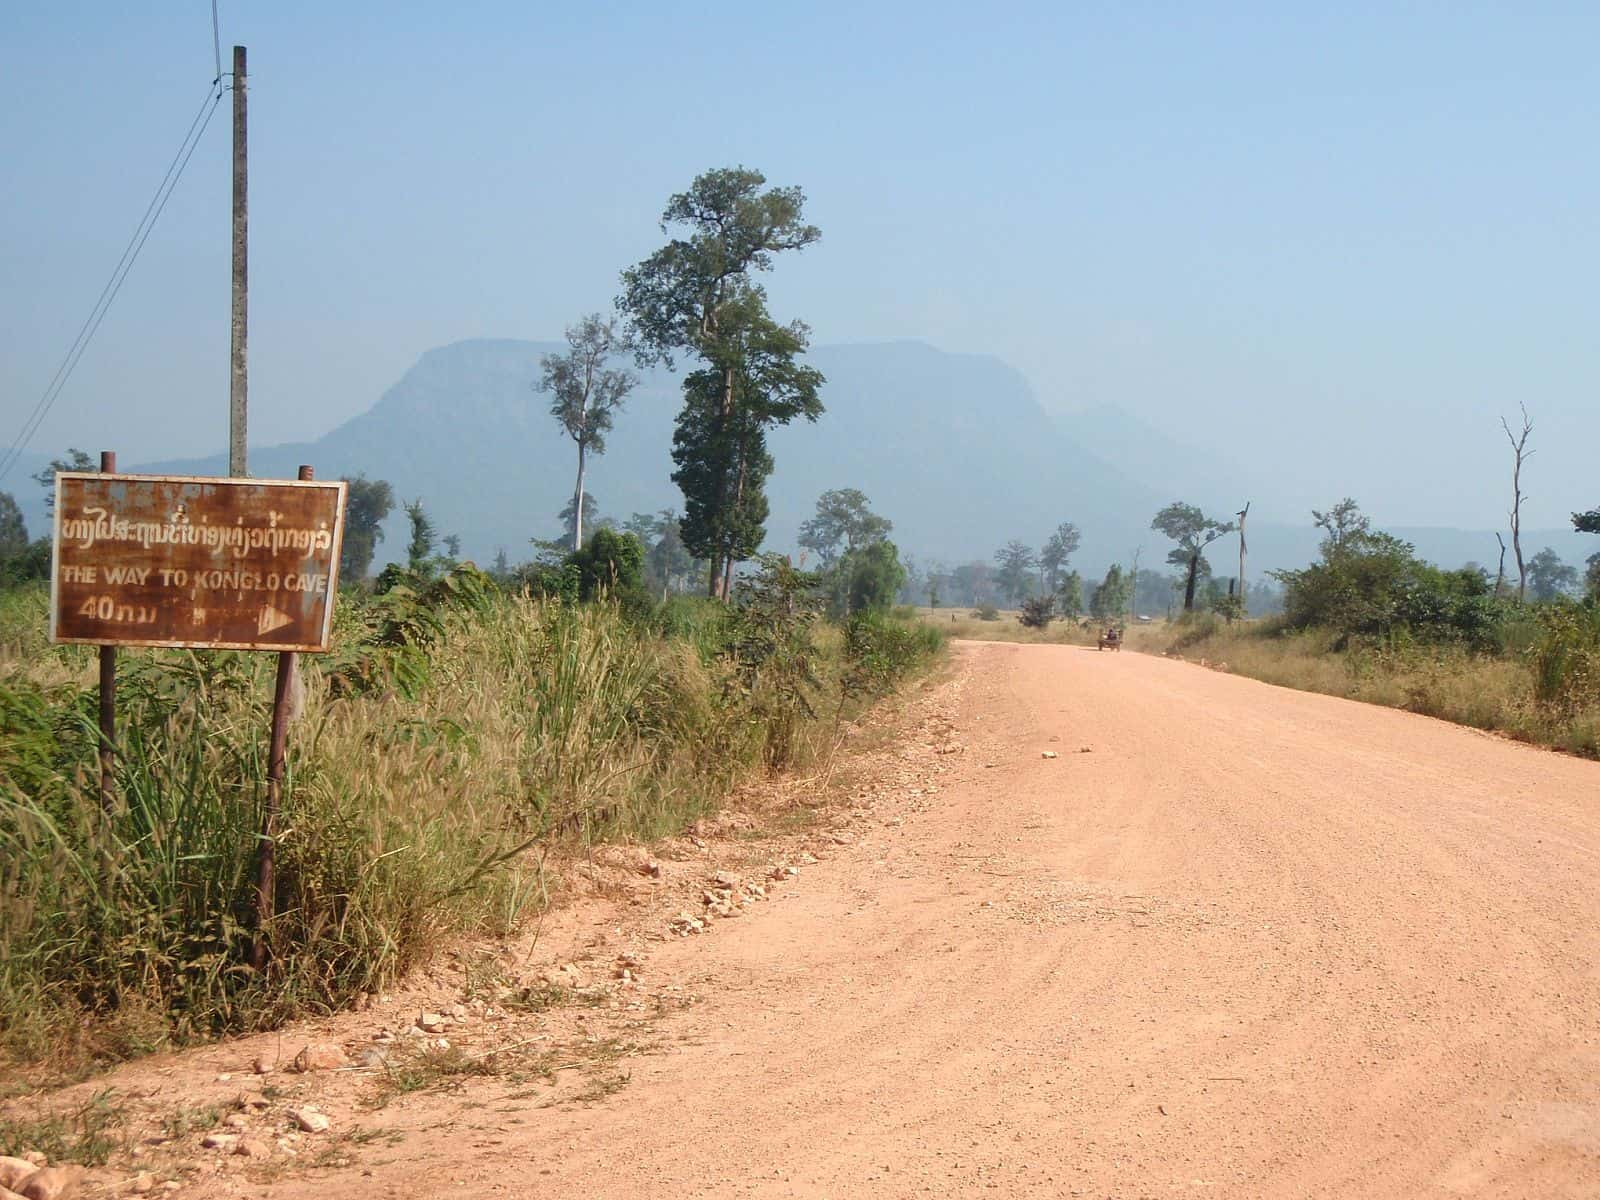 Thakhek Loop, Laos - a must do motorbiking adventure!